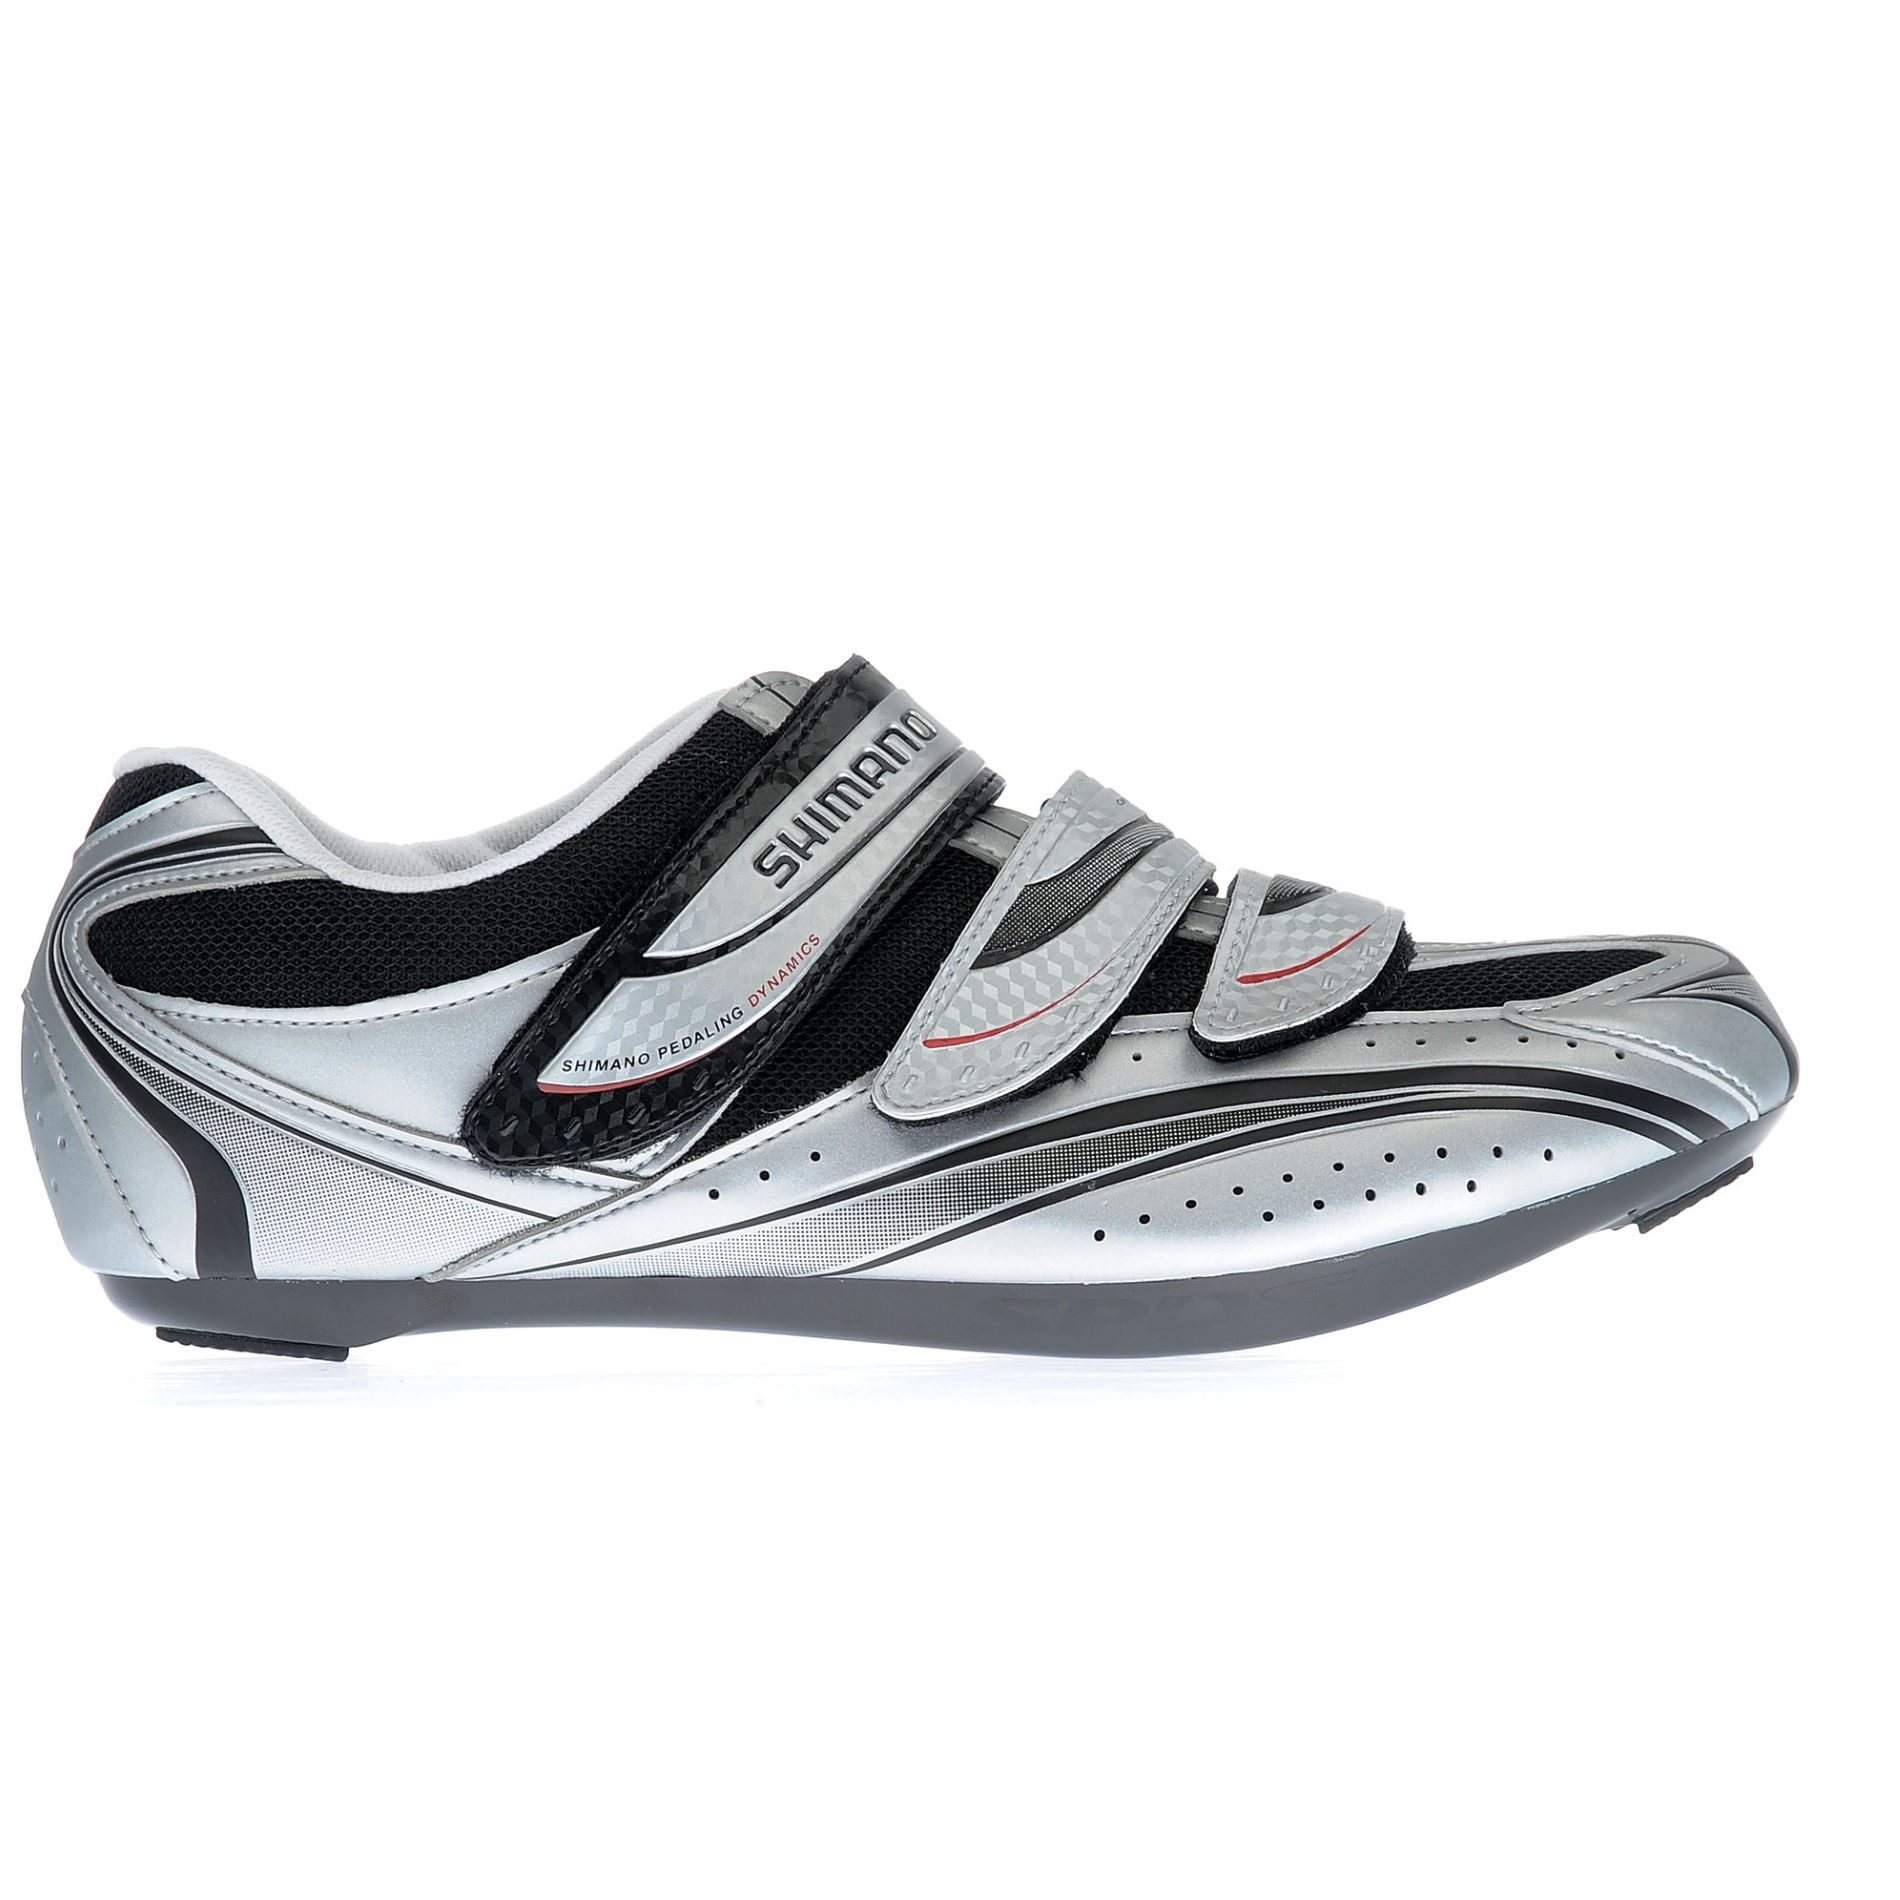 Top Rated Cycling Shoes